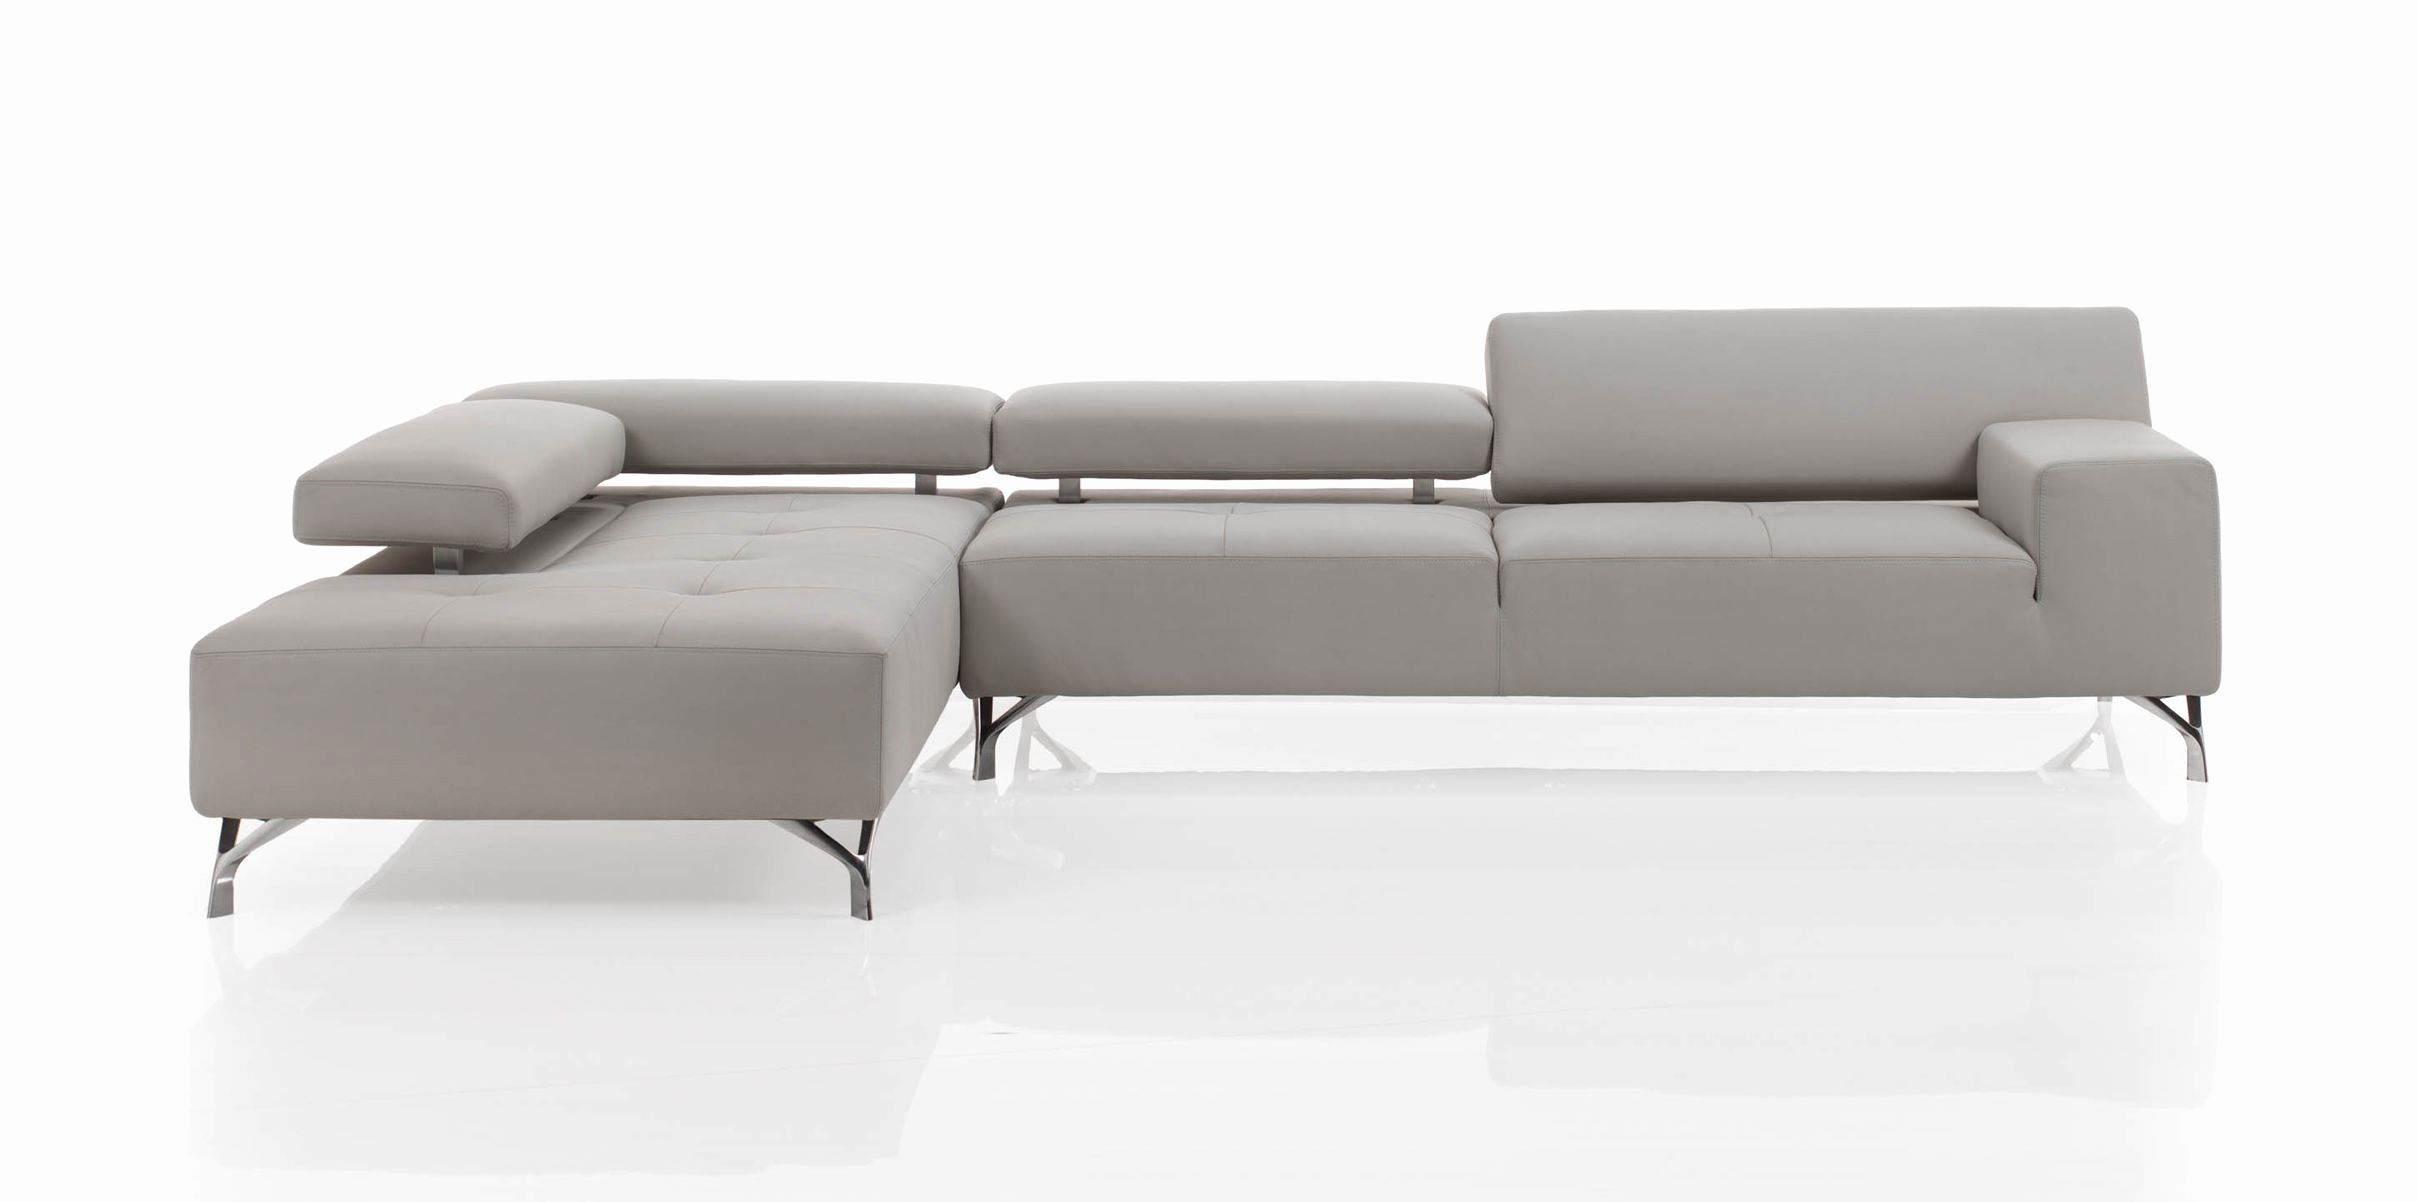 knack living stylish for modern room buy couches couch sectional reclining with sofas microfiber looking a sofa